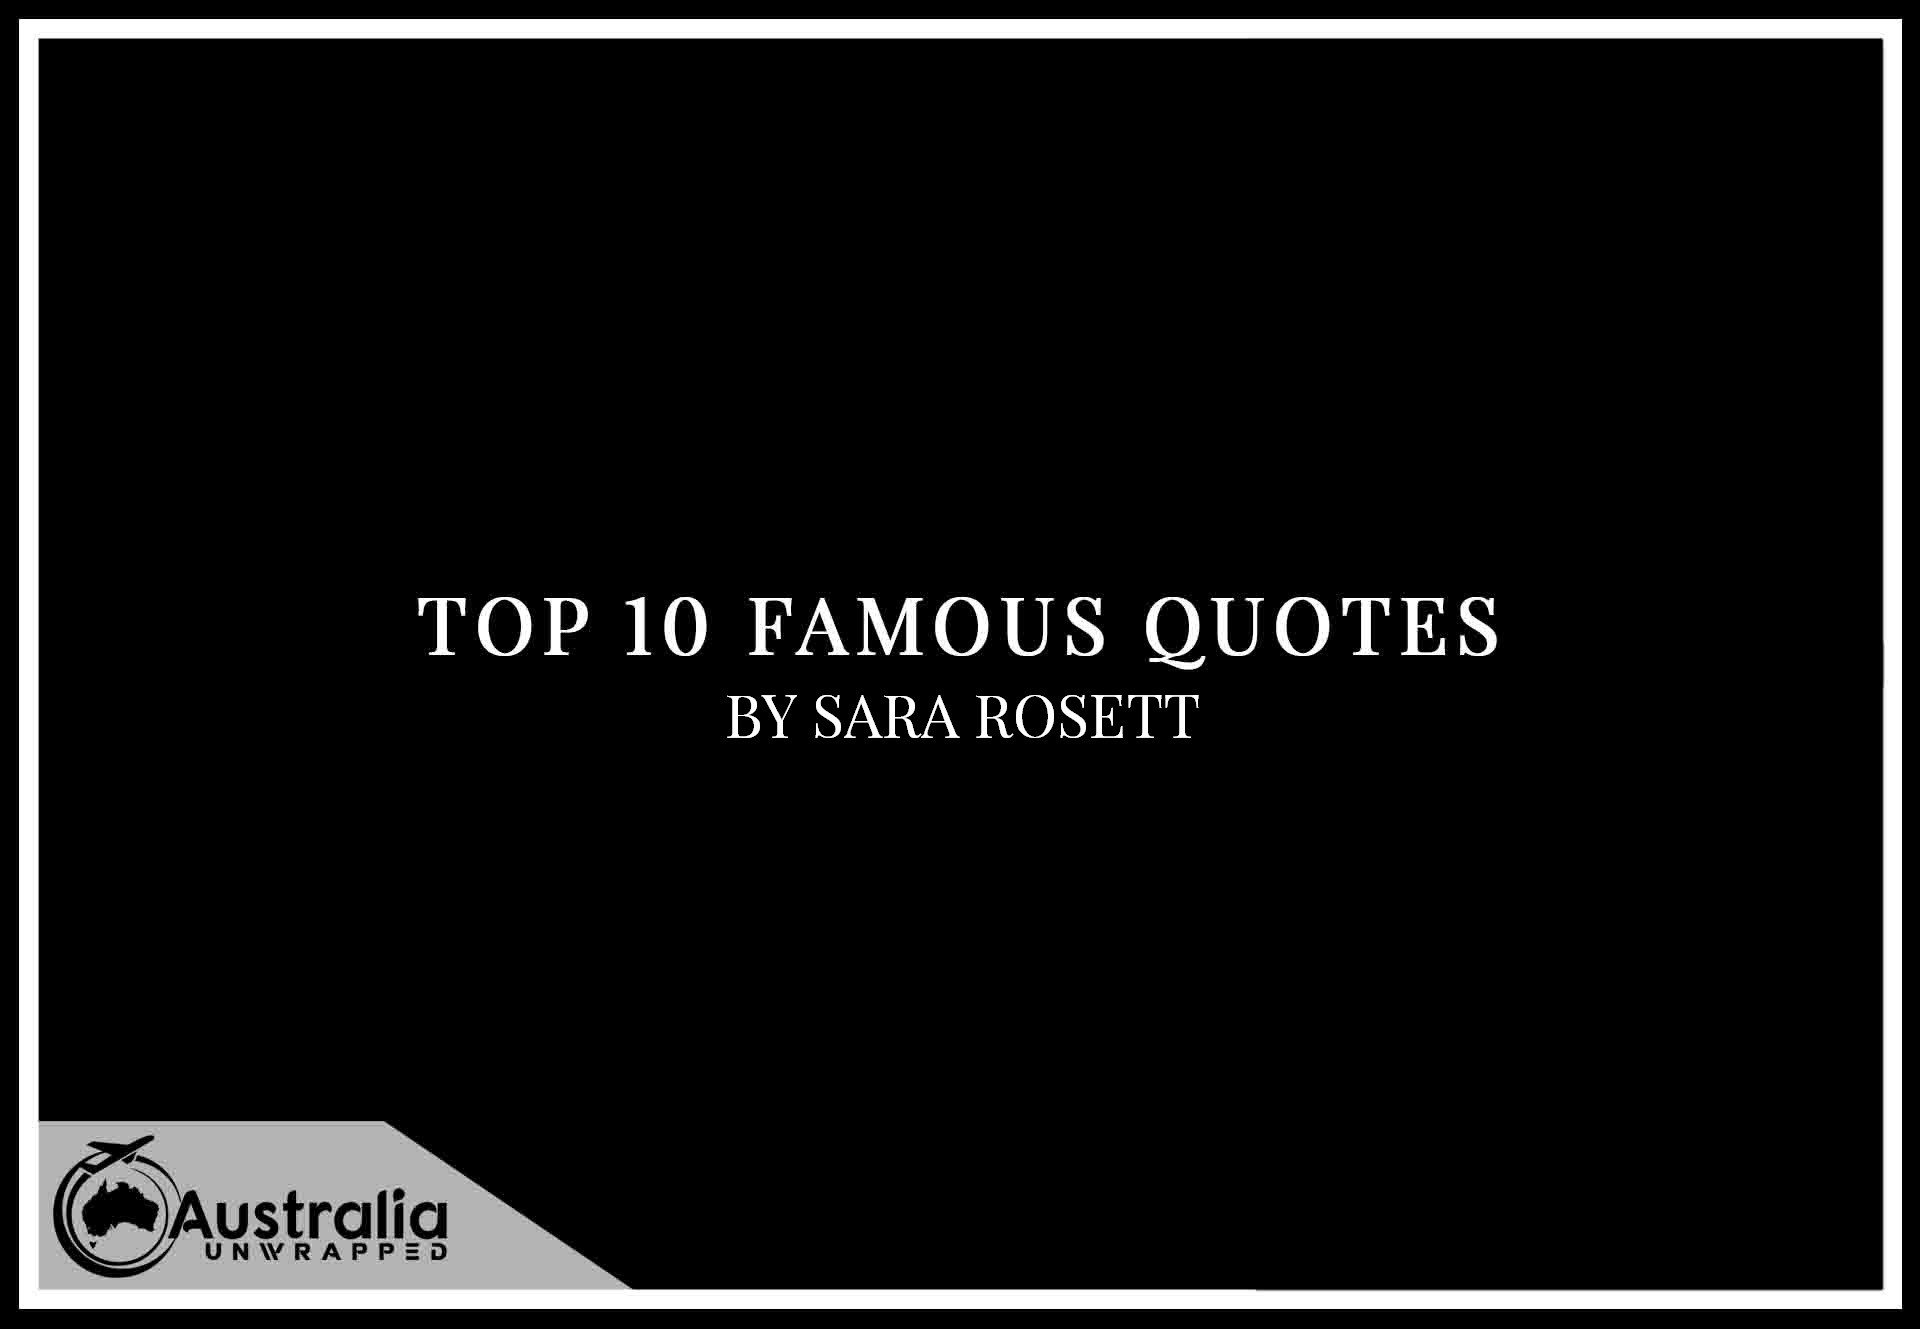 Top 10 Famous Quotes by Author Sara Rosett